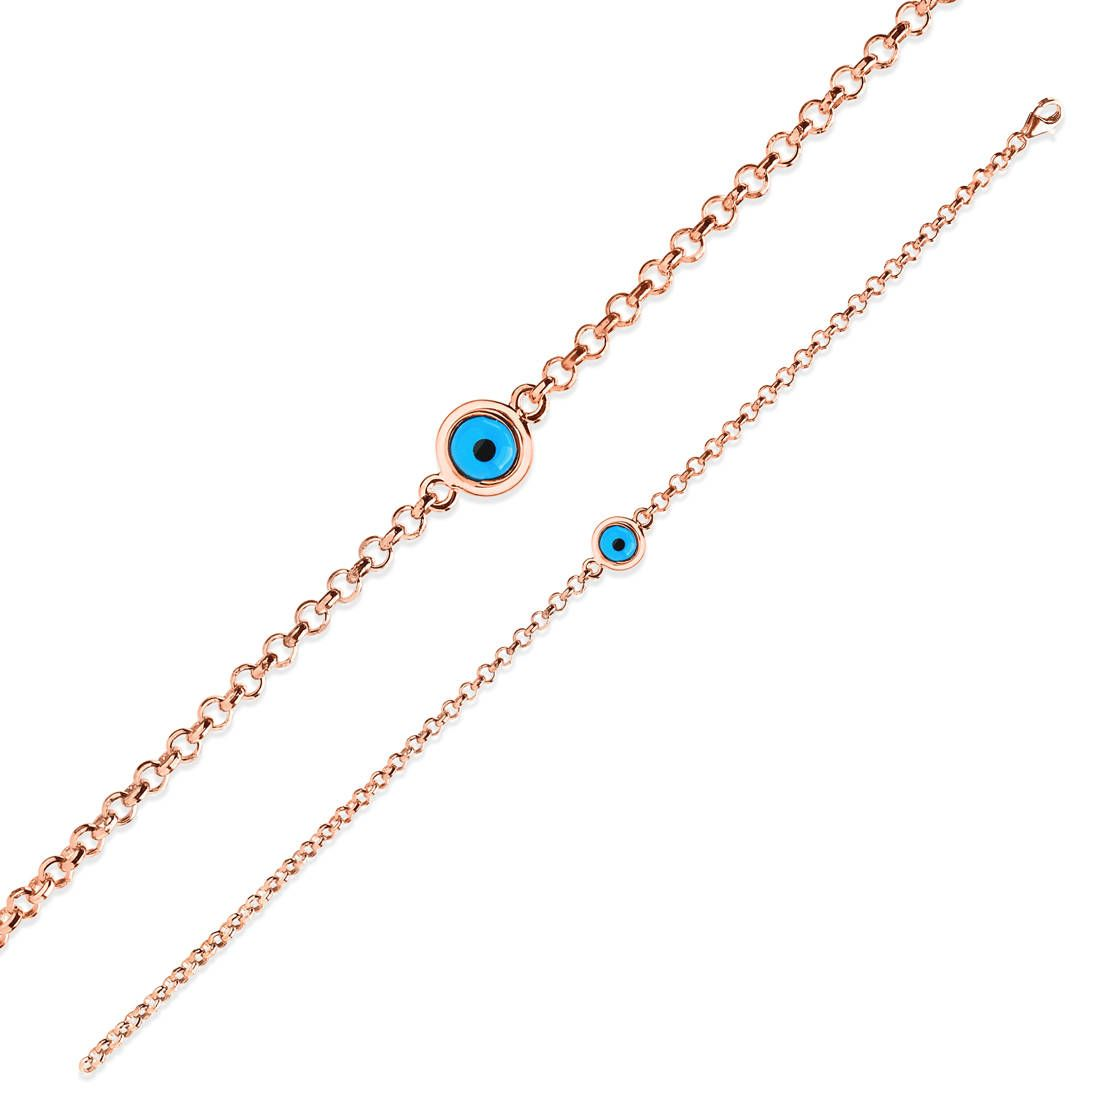 Photo of Evil Eye Chain Bracelet / Sterling Silver Bracelet / Evil Eye Bracelet / Ladies Bracelet / 14k Rose Gold Plated Bracelet